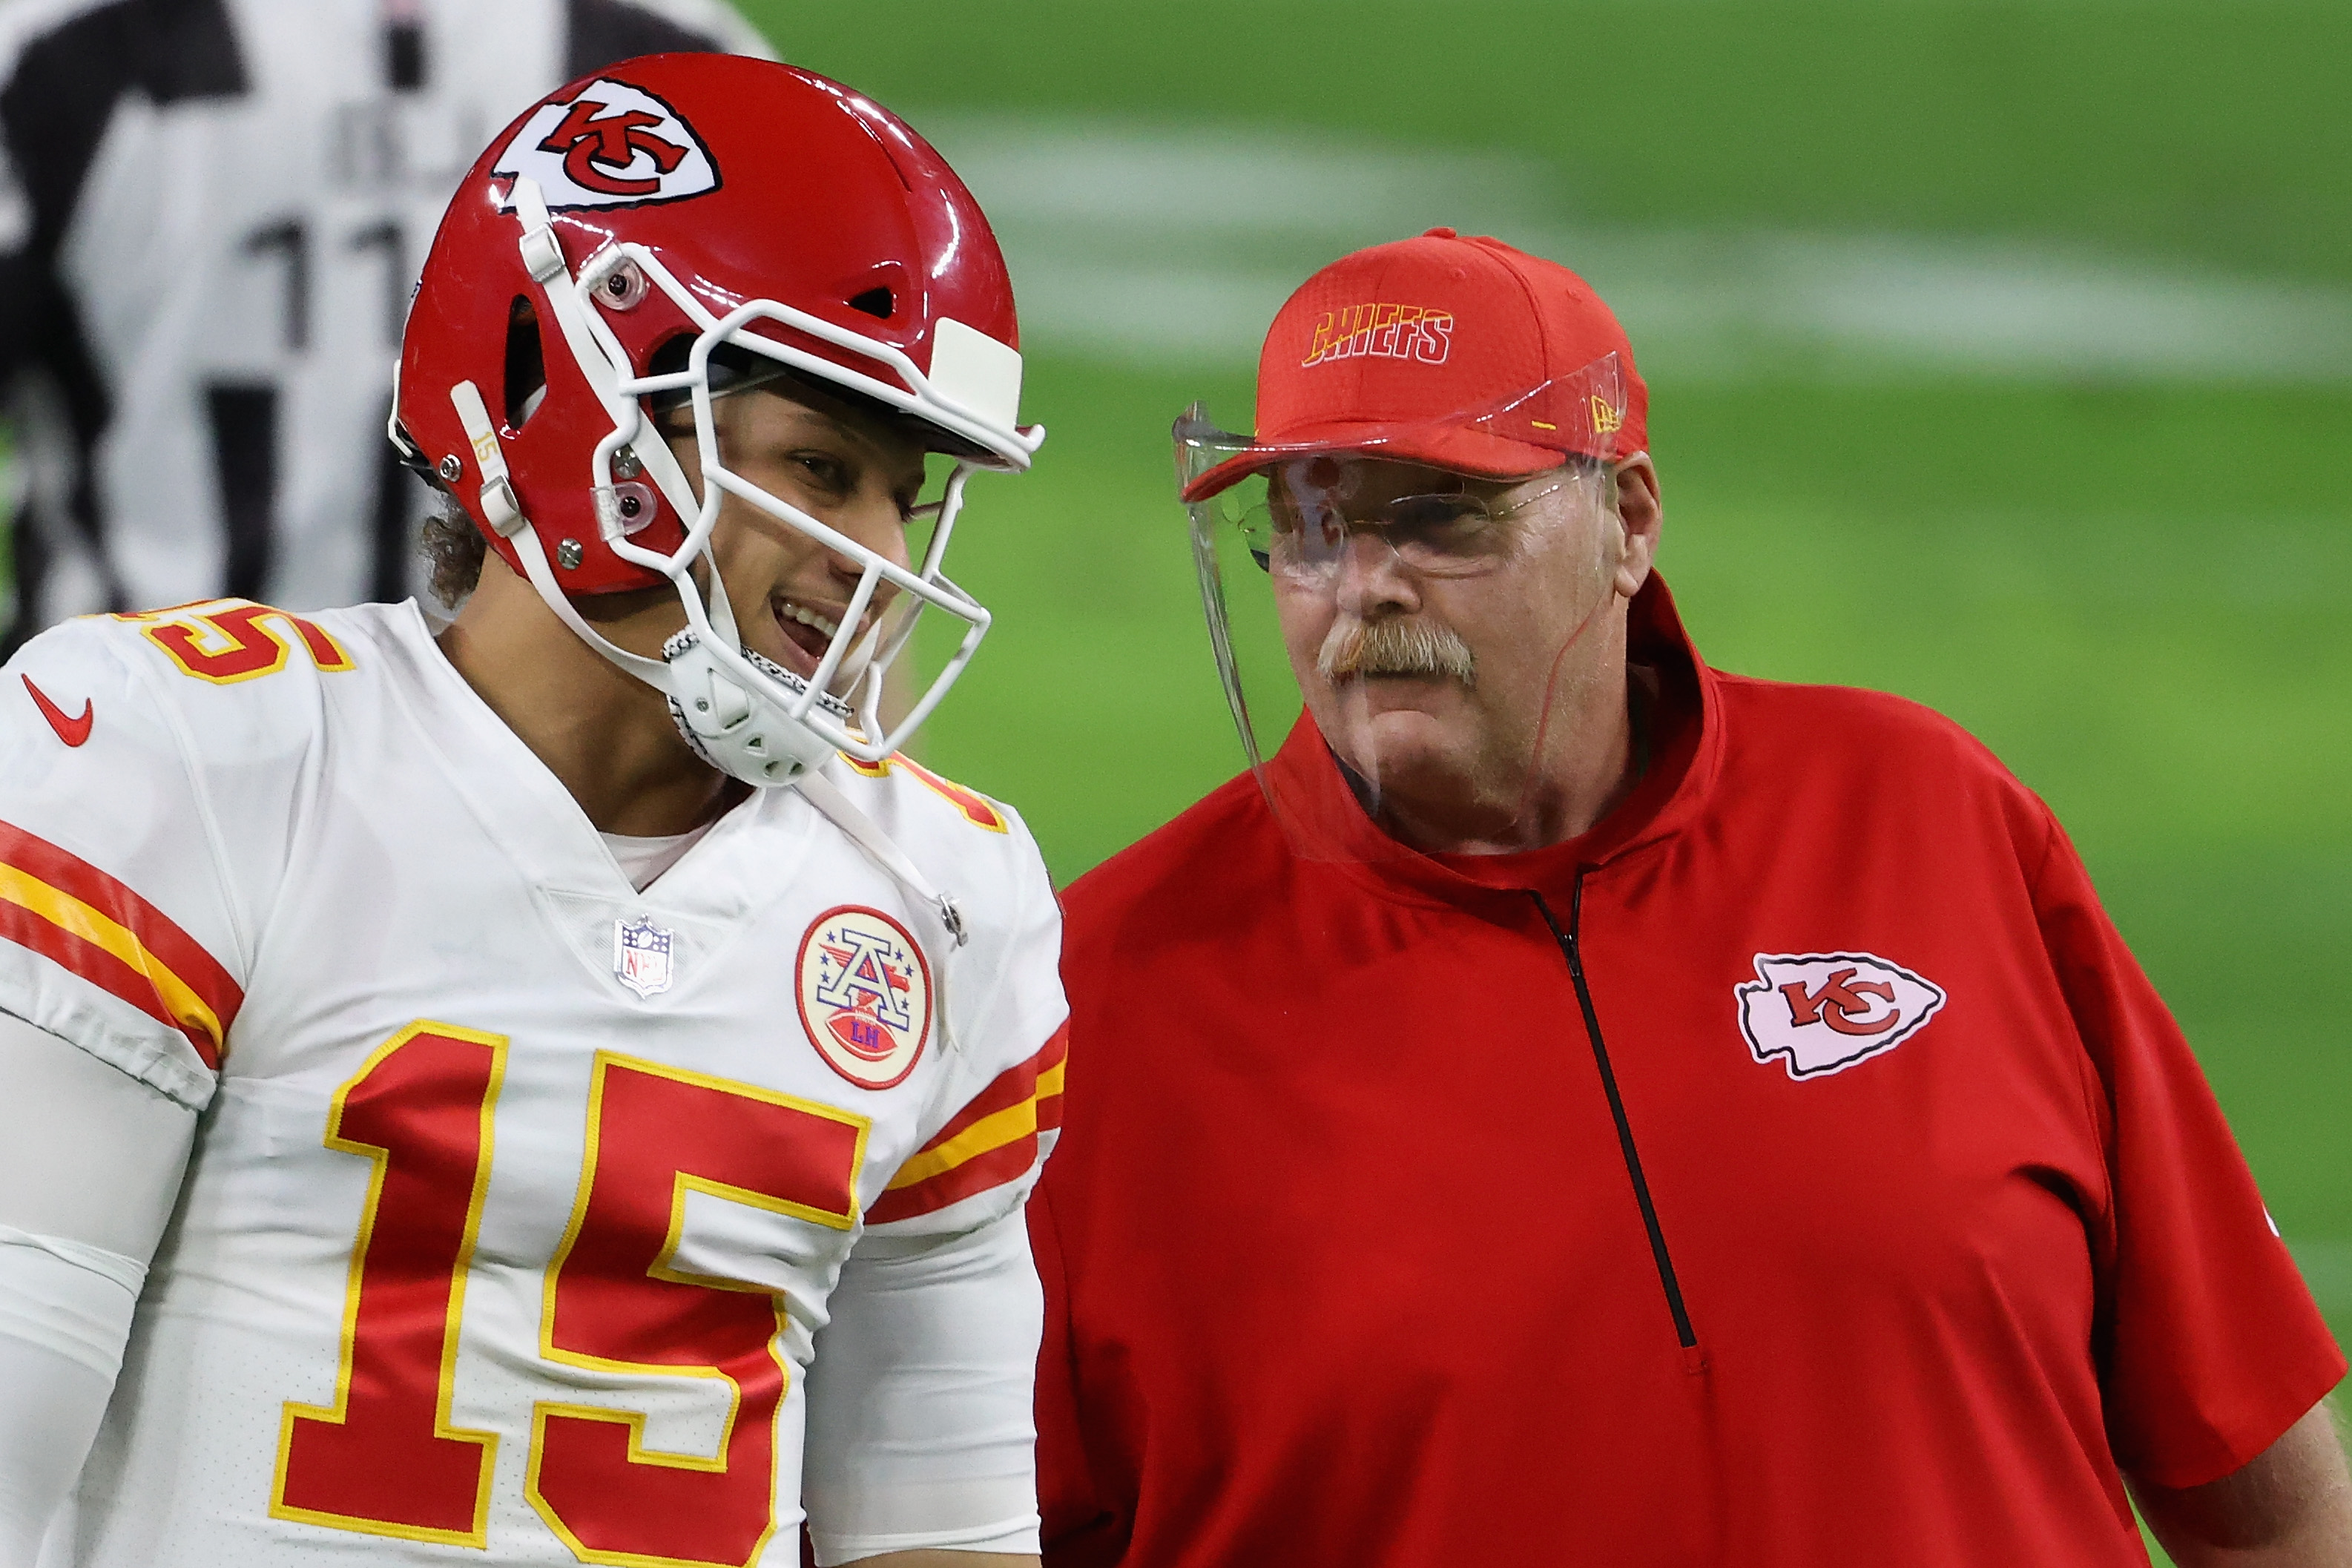 Andy Reid talks to Patrick Mahomes on the sideline